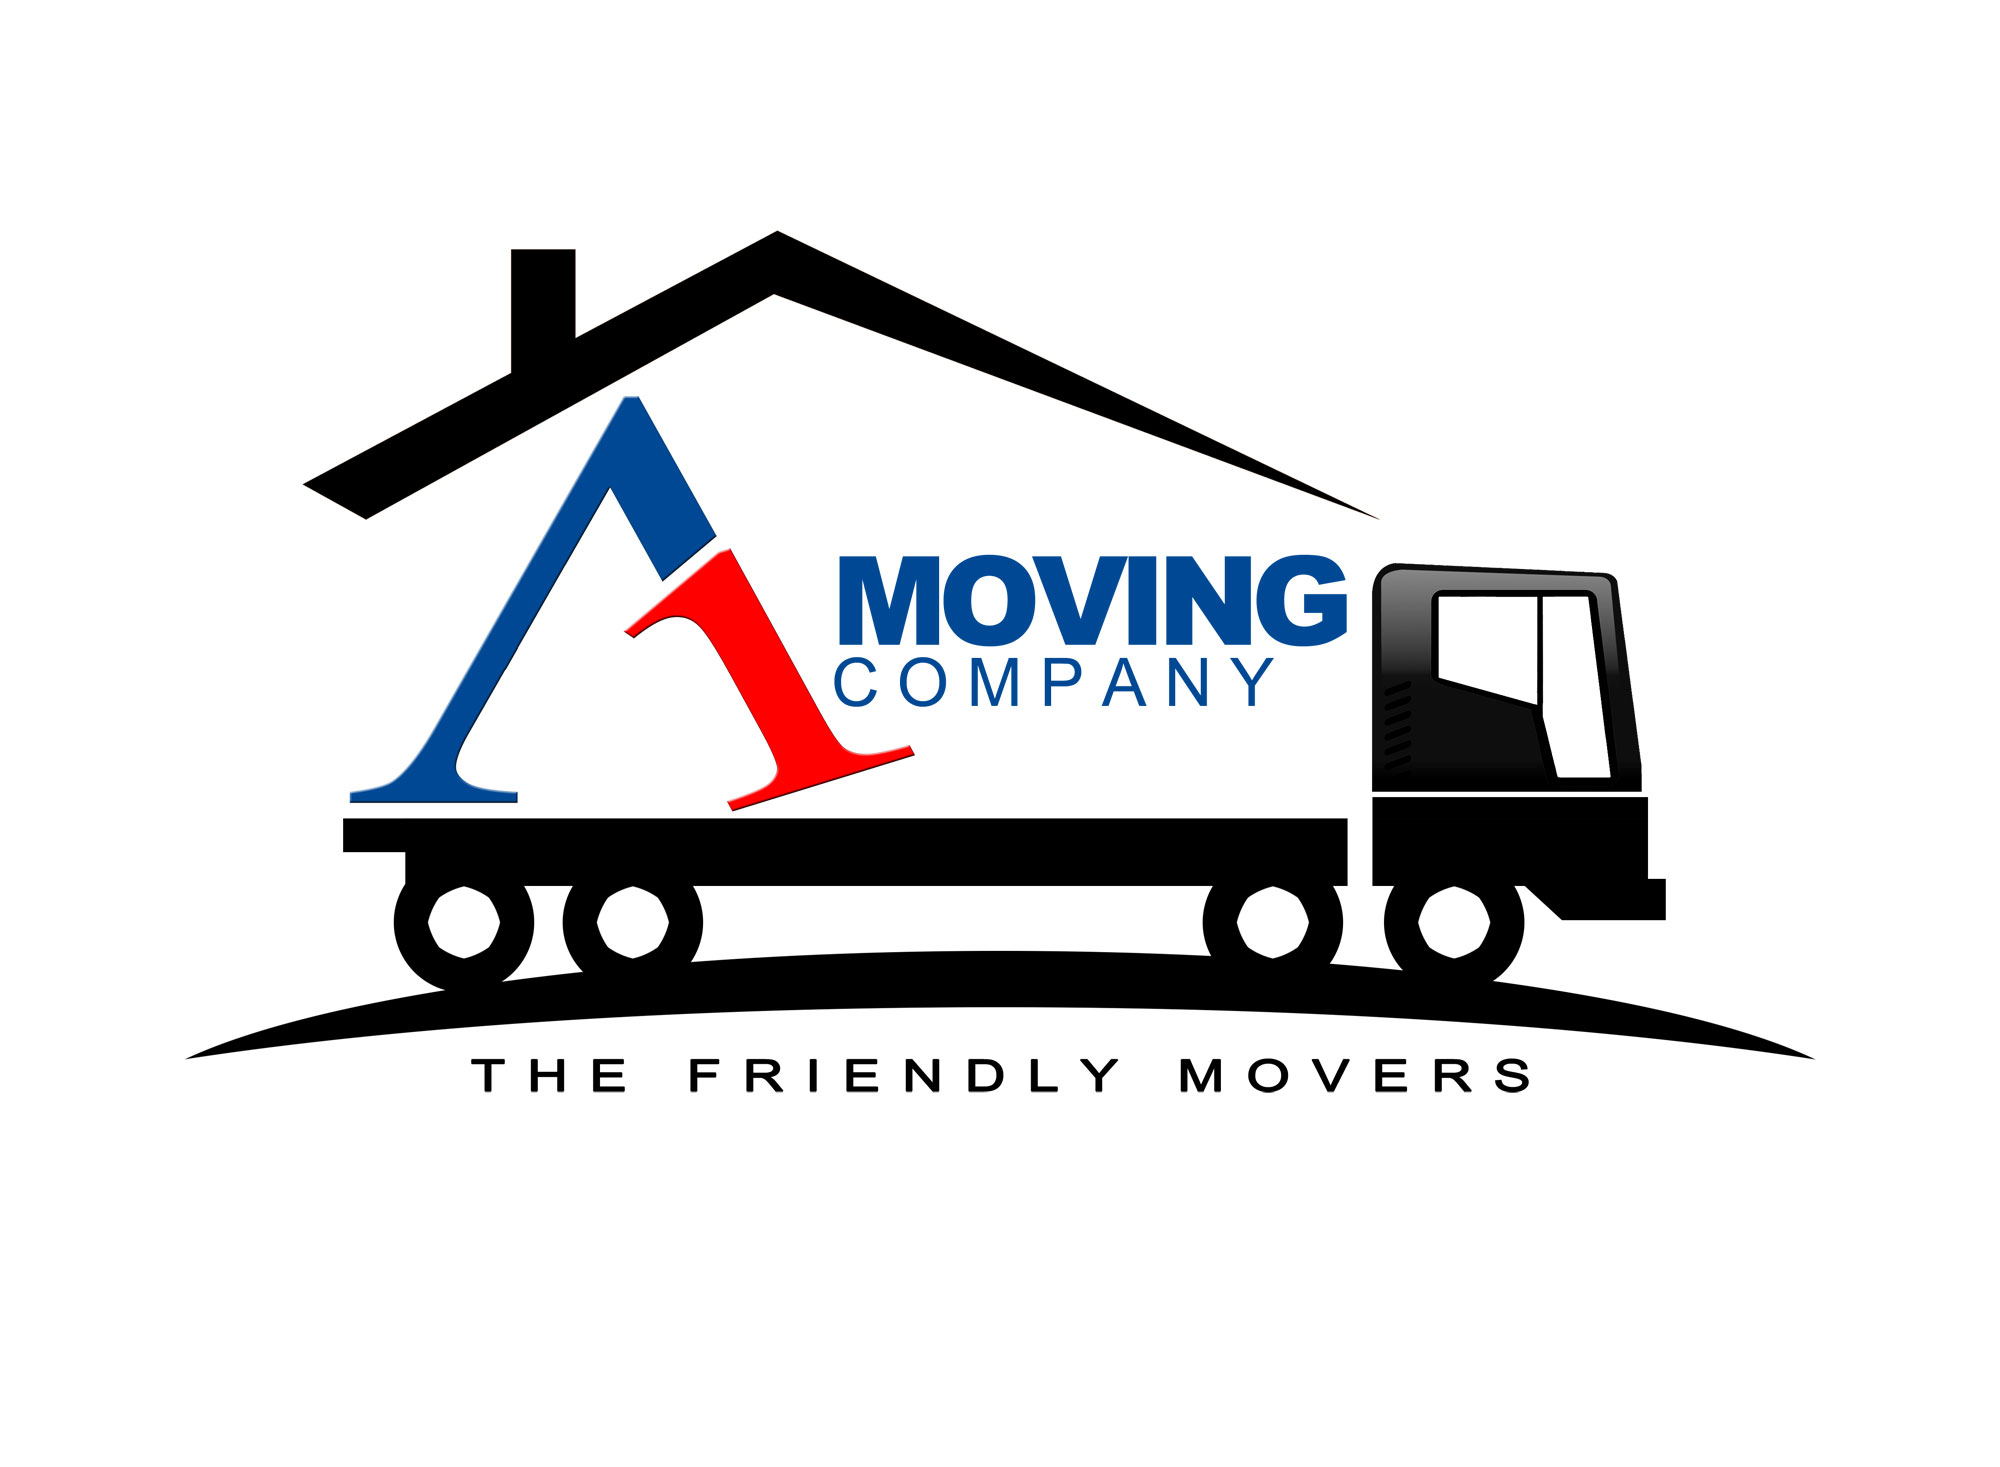 Bbb Business Profile A 1 Moving Company Reviews And